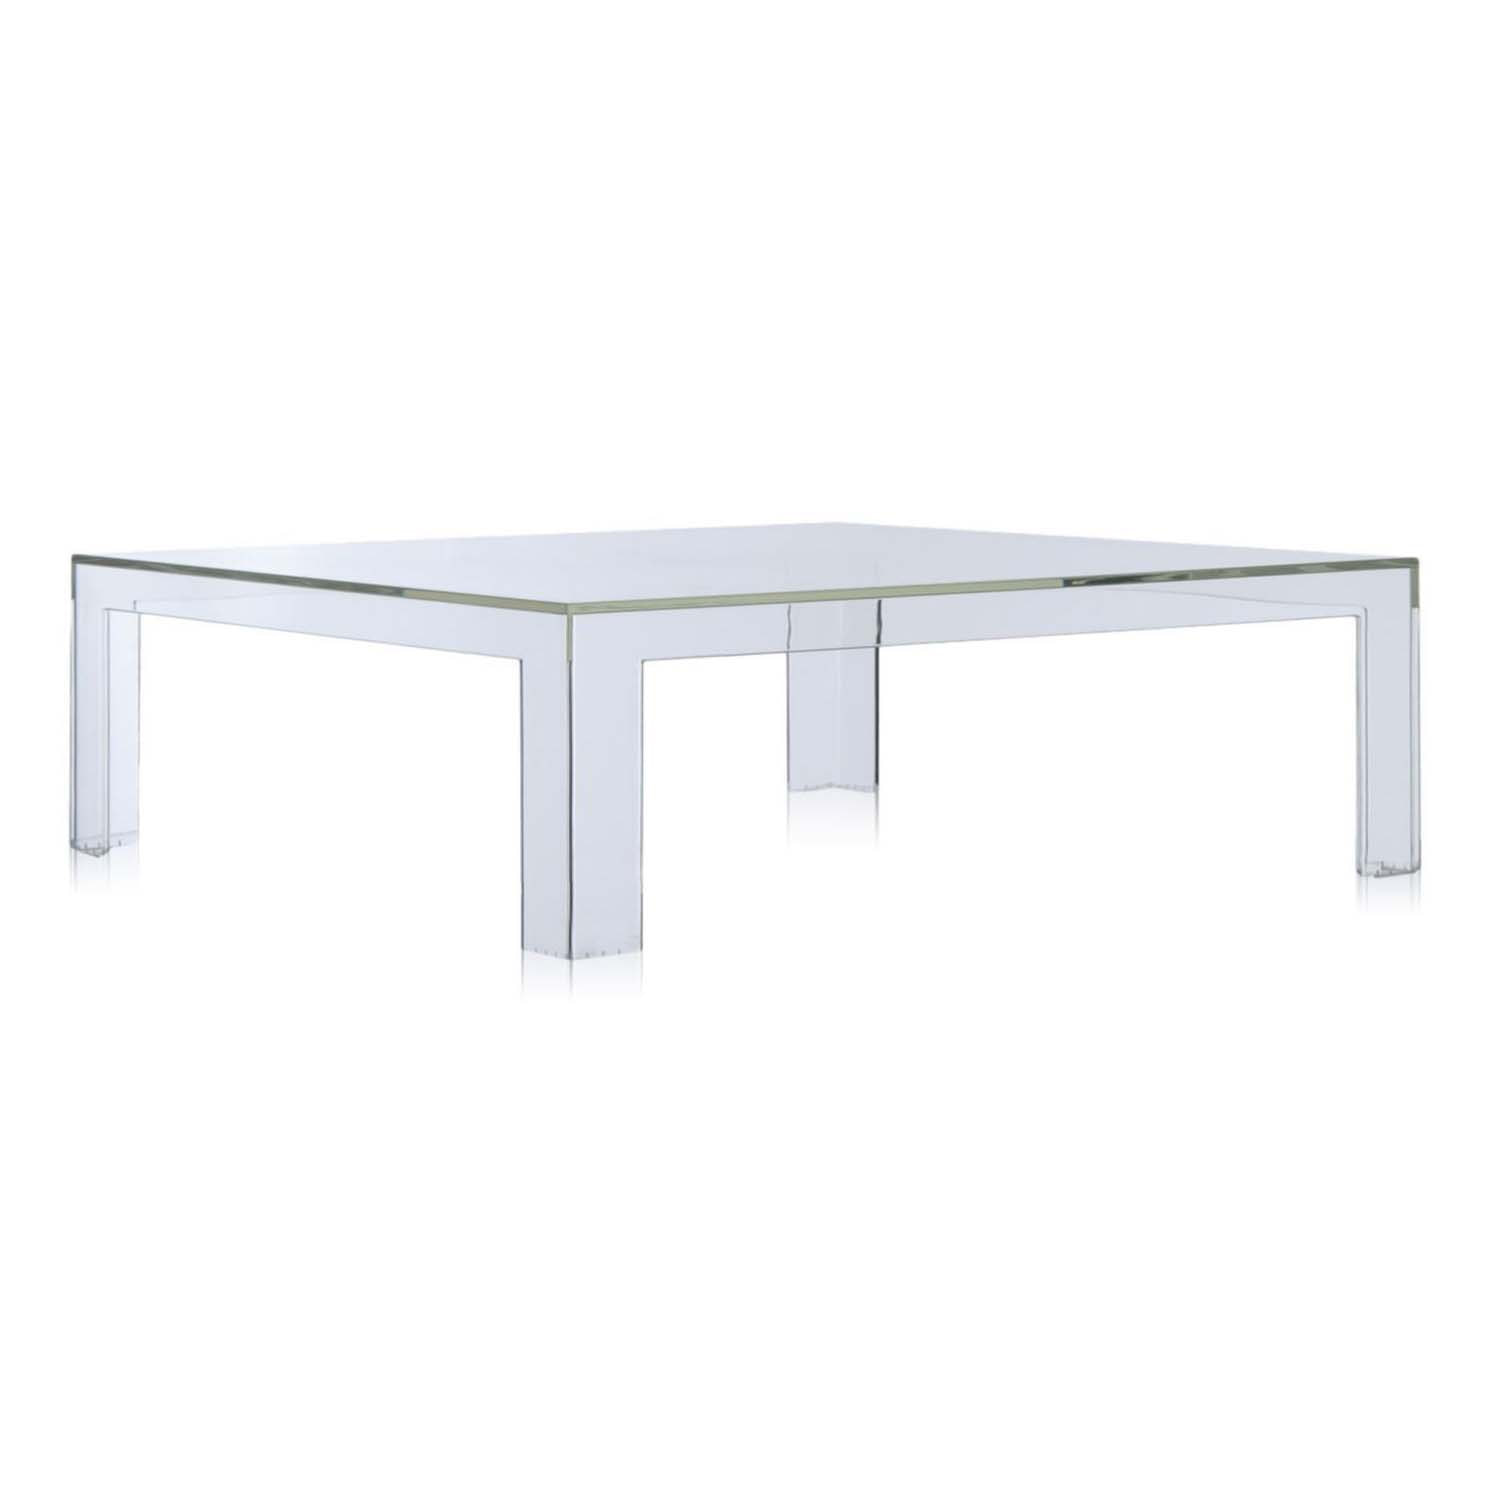 INVISIBLE low table